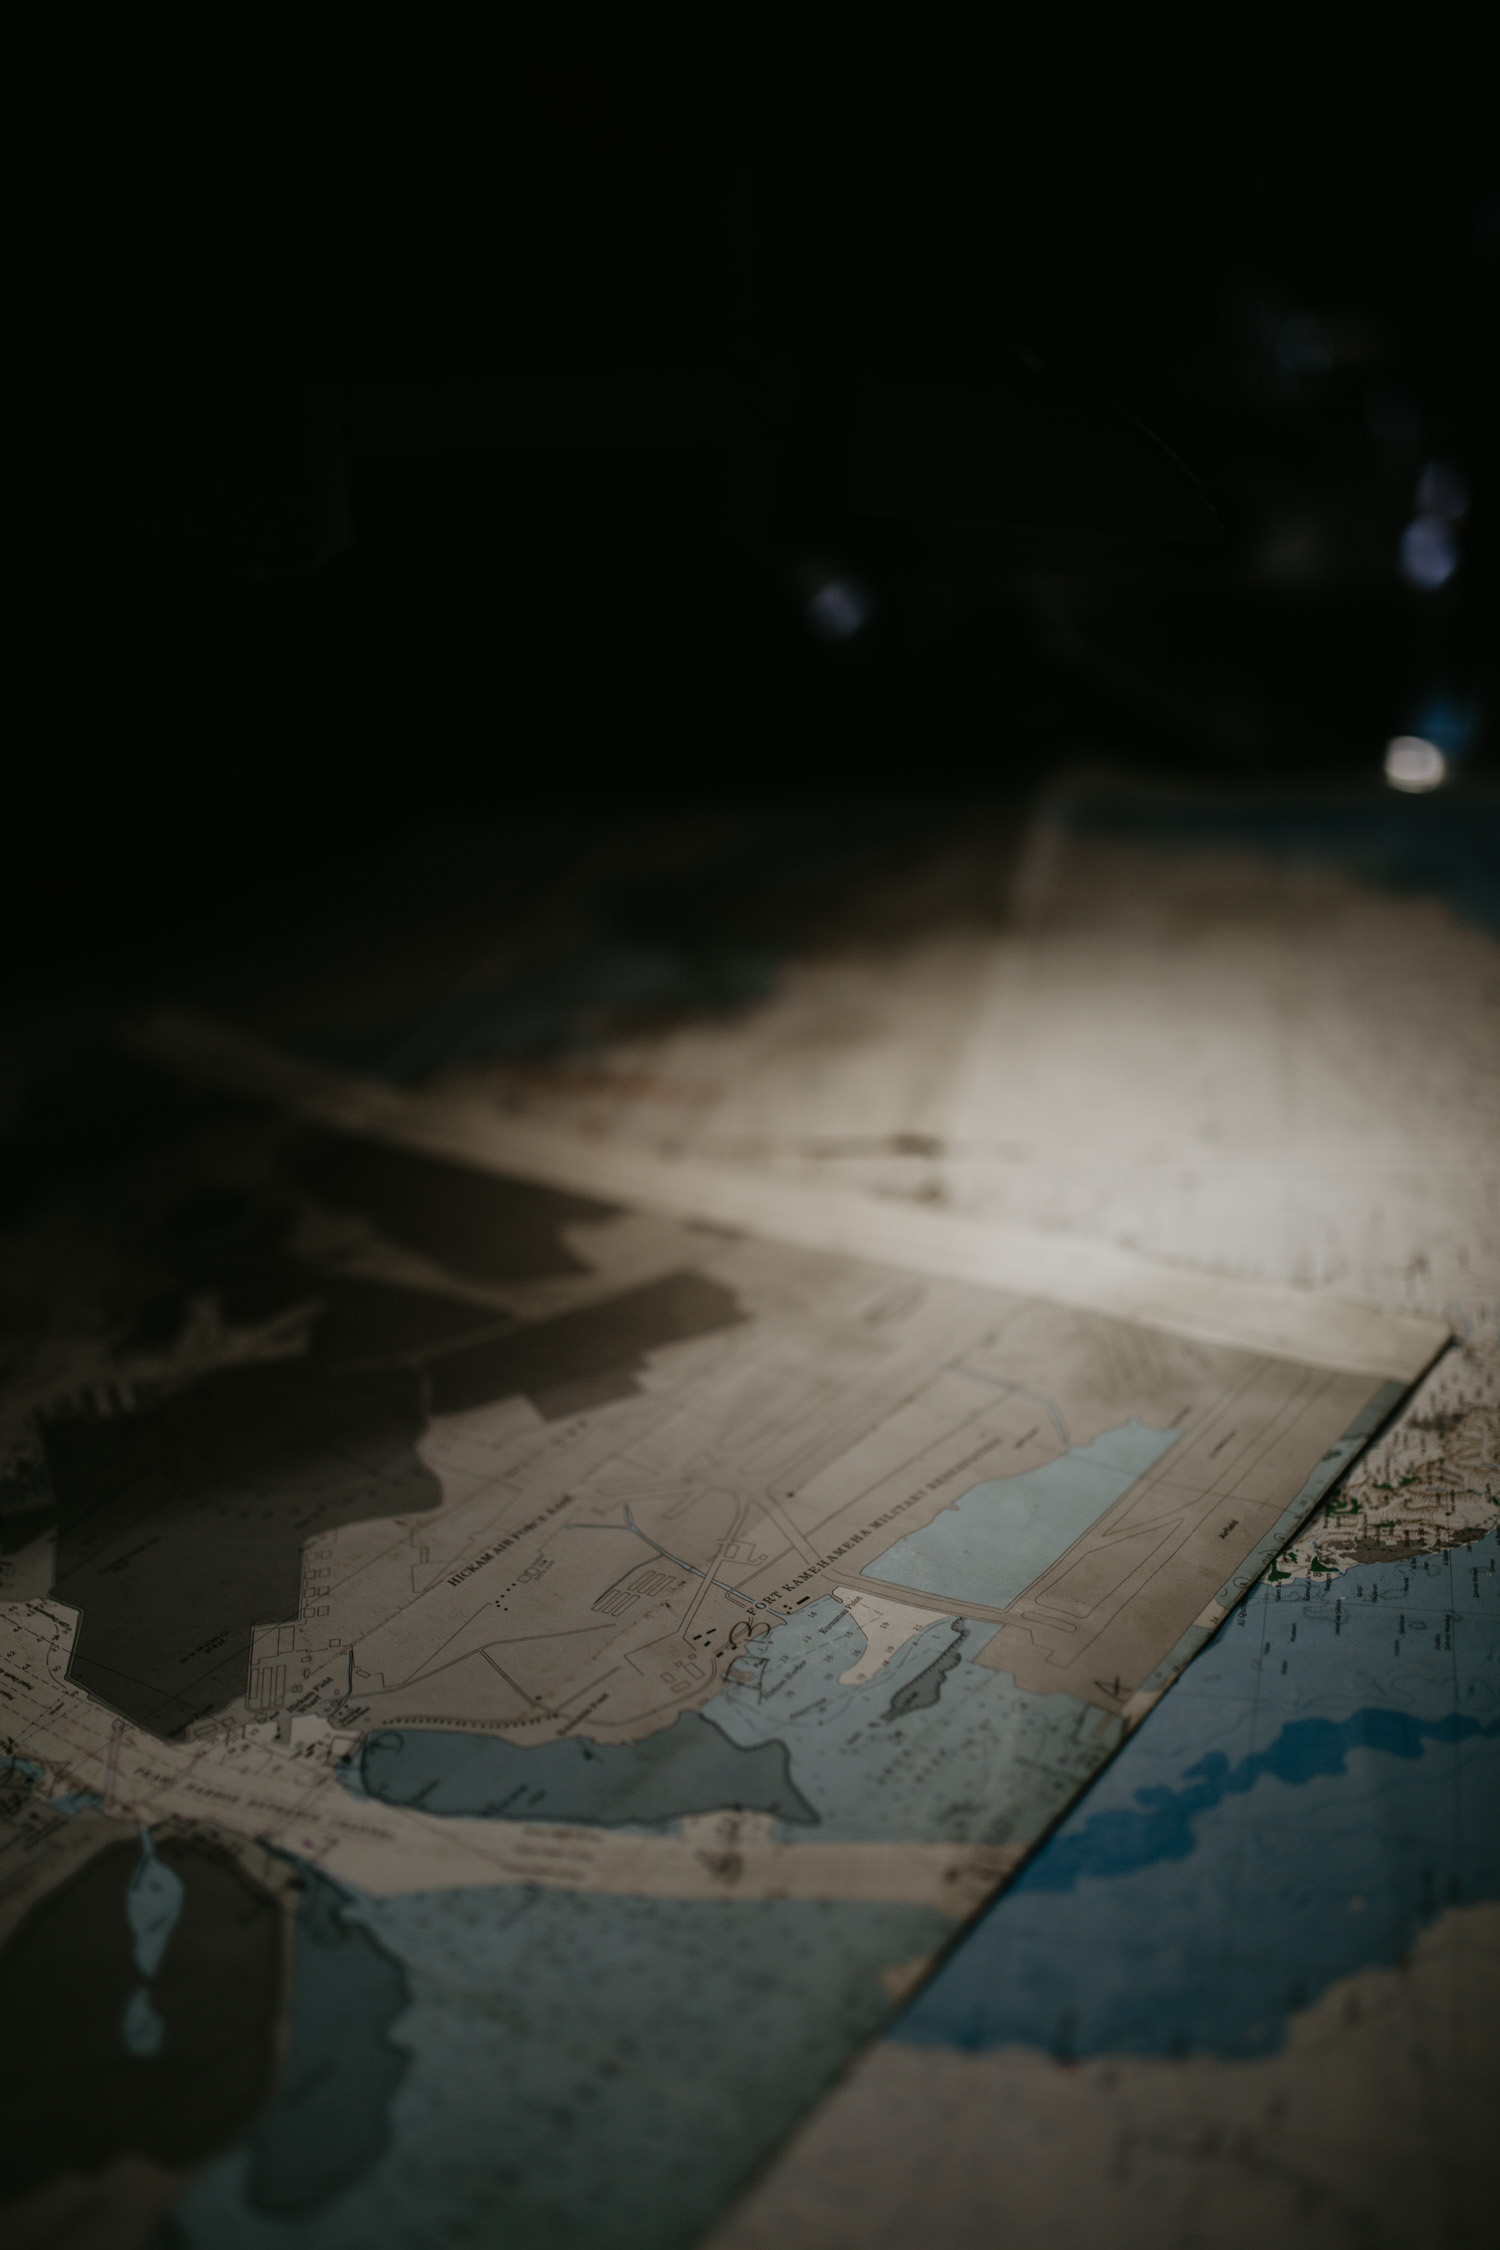 Imagine they are reading through these maps under this dim light…